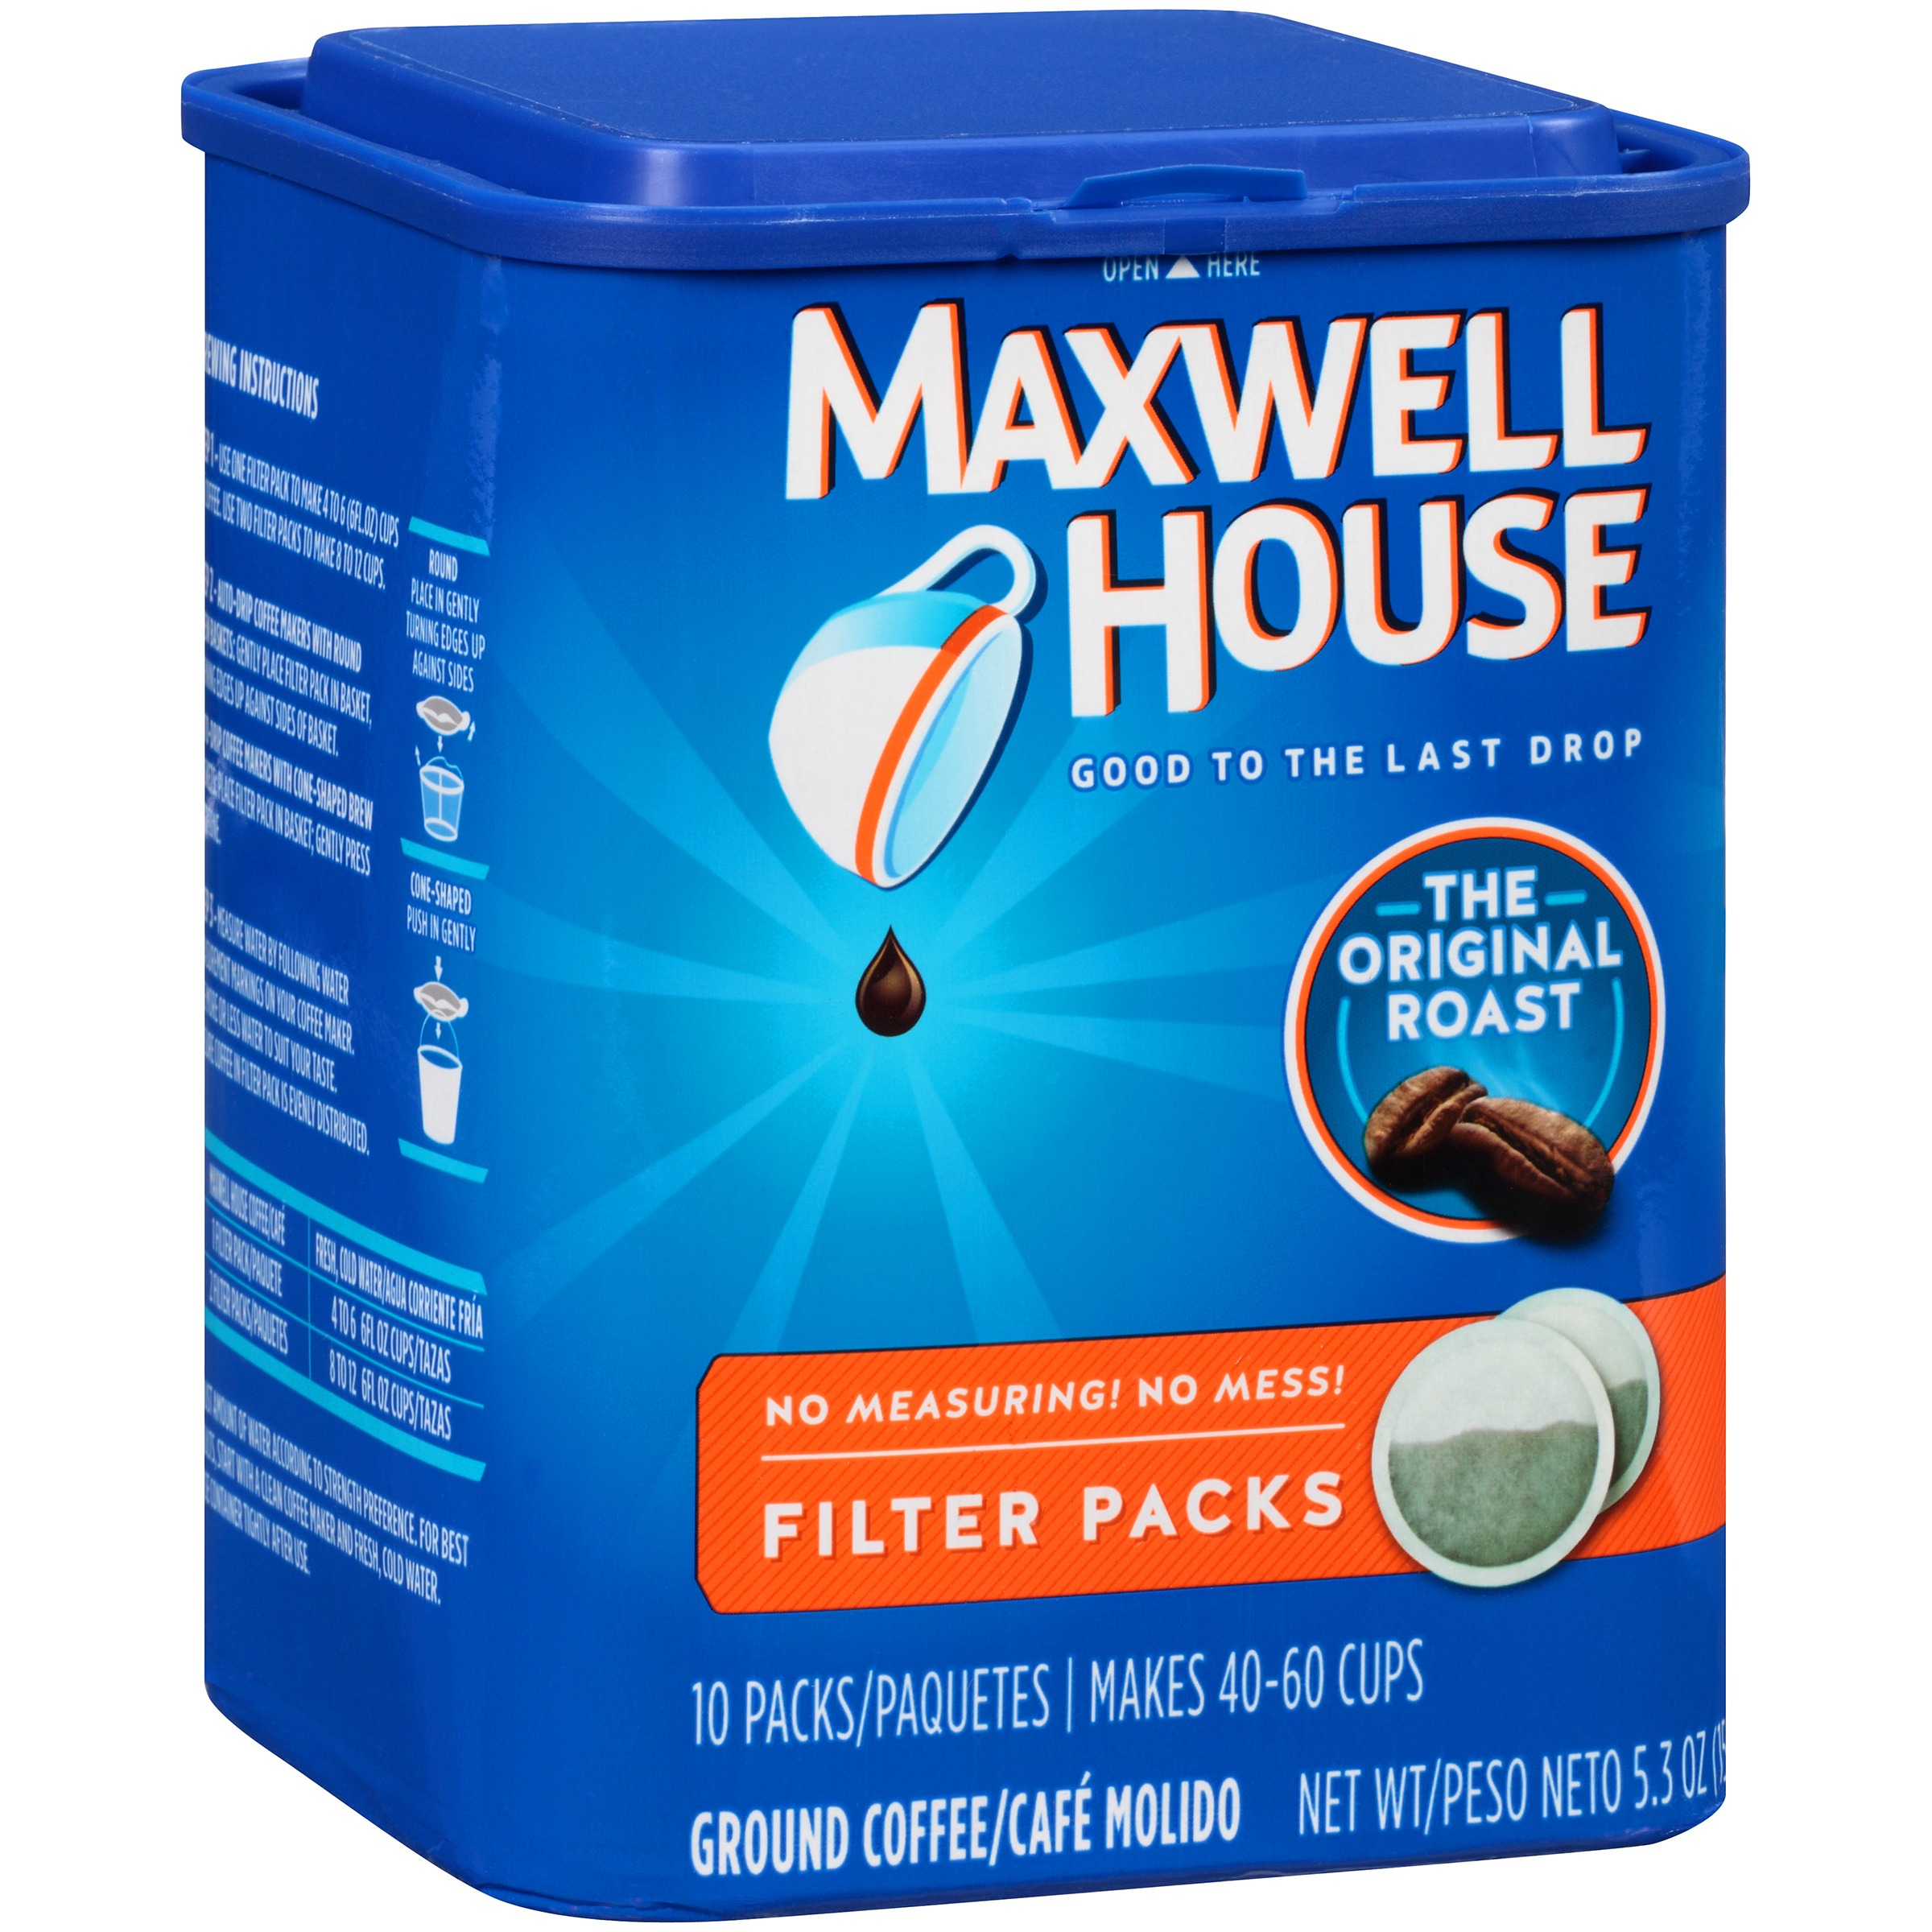 Maxwell House Original Roast Ground Coffee Filter Packs 10 ct Canister by Kraft Foods Group, Inc.